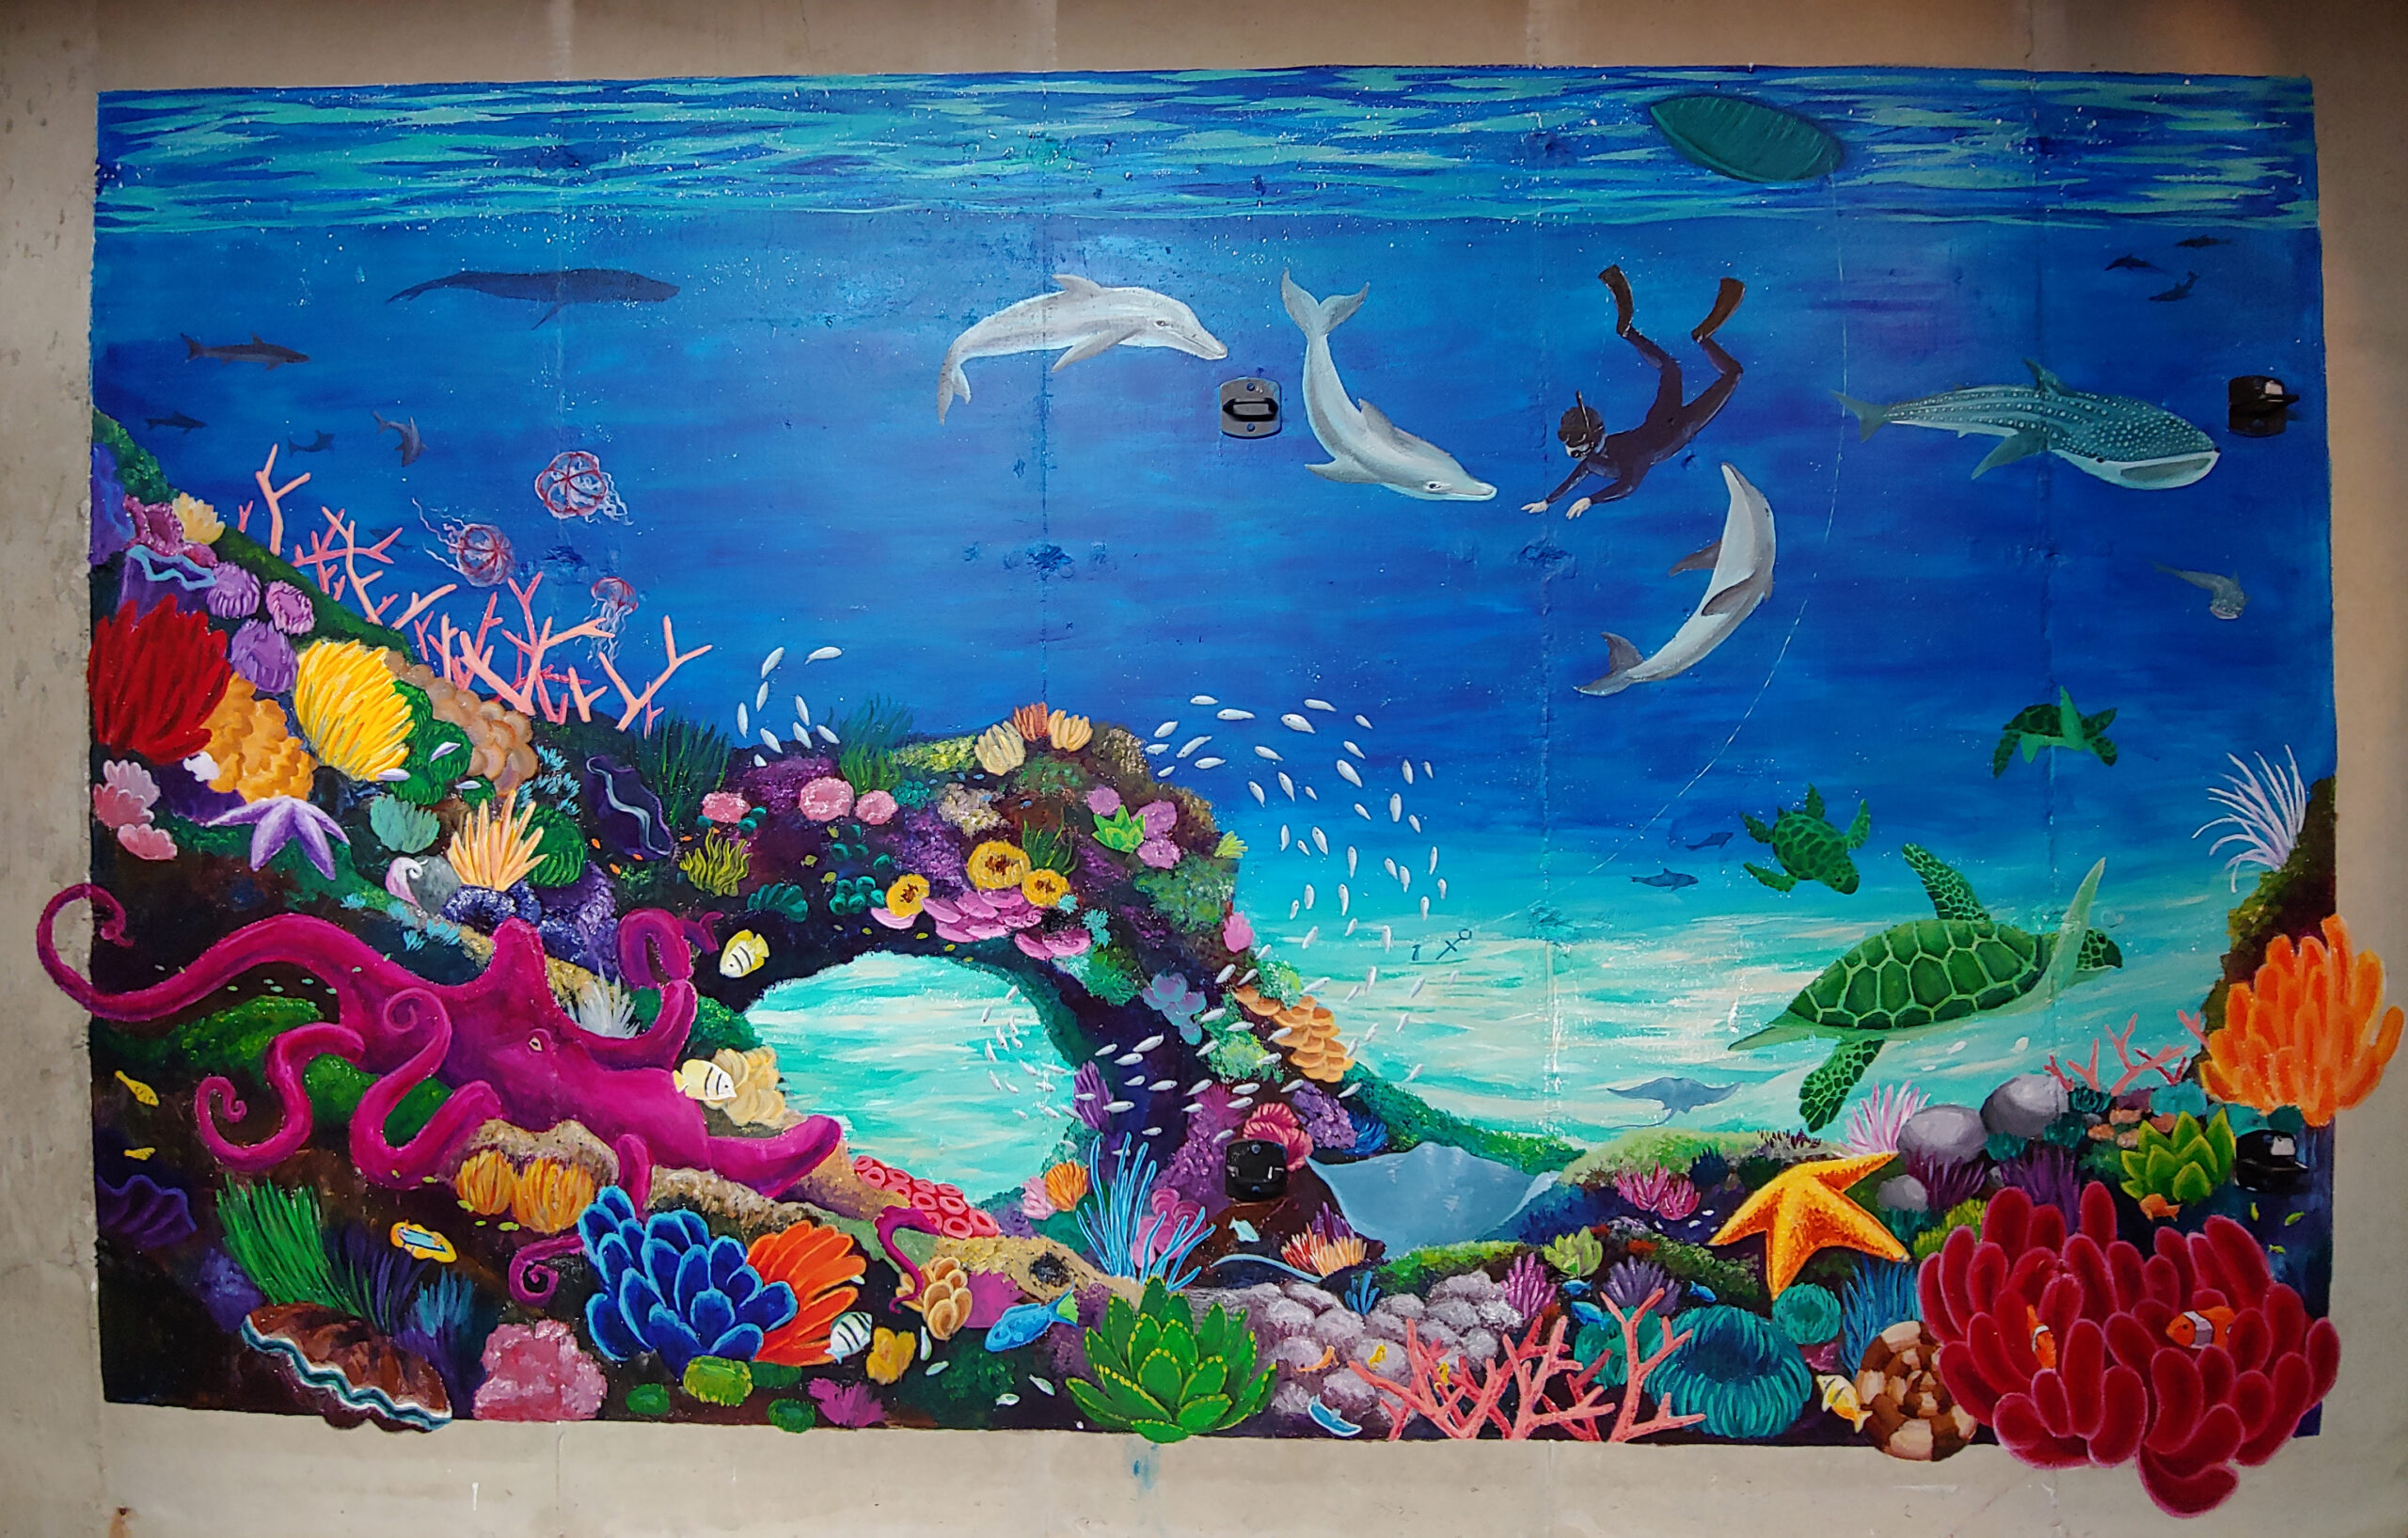 Underwater Mural on Concrete Wall